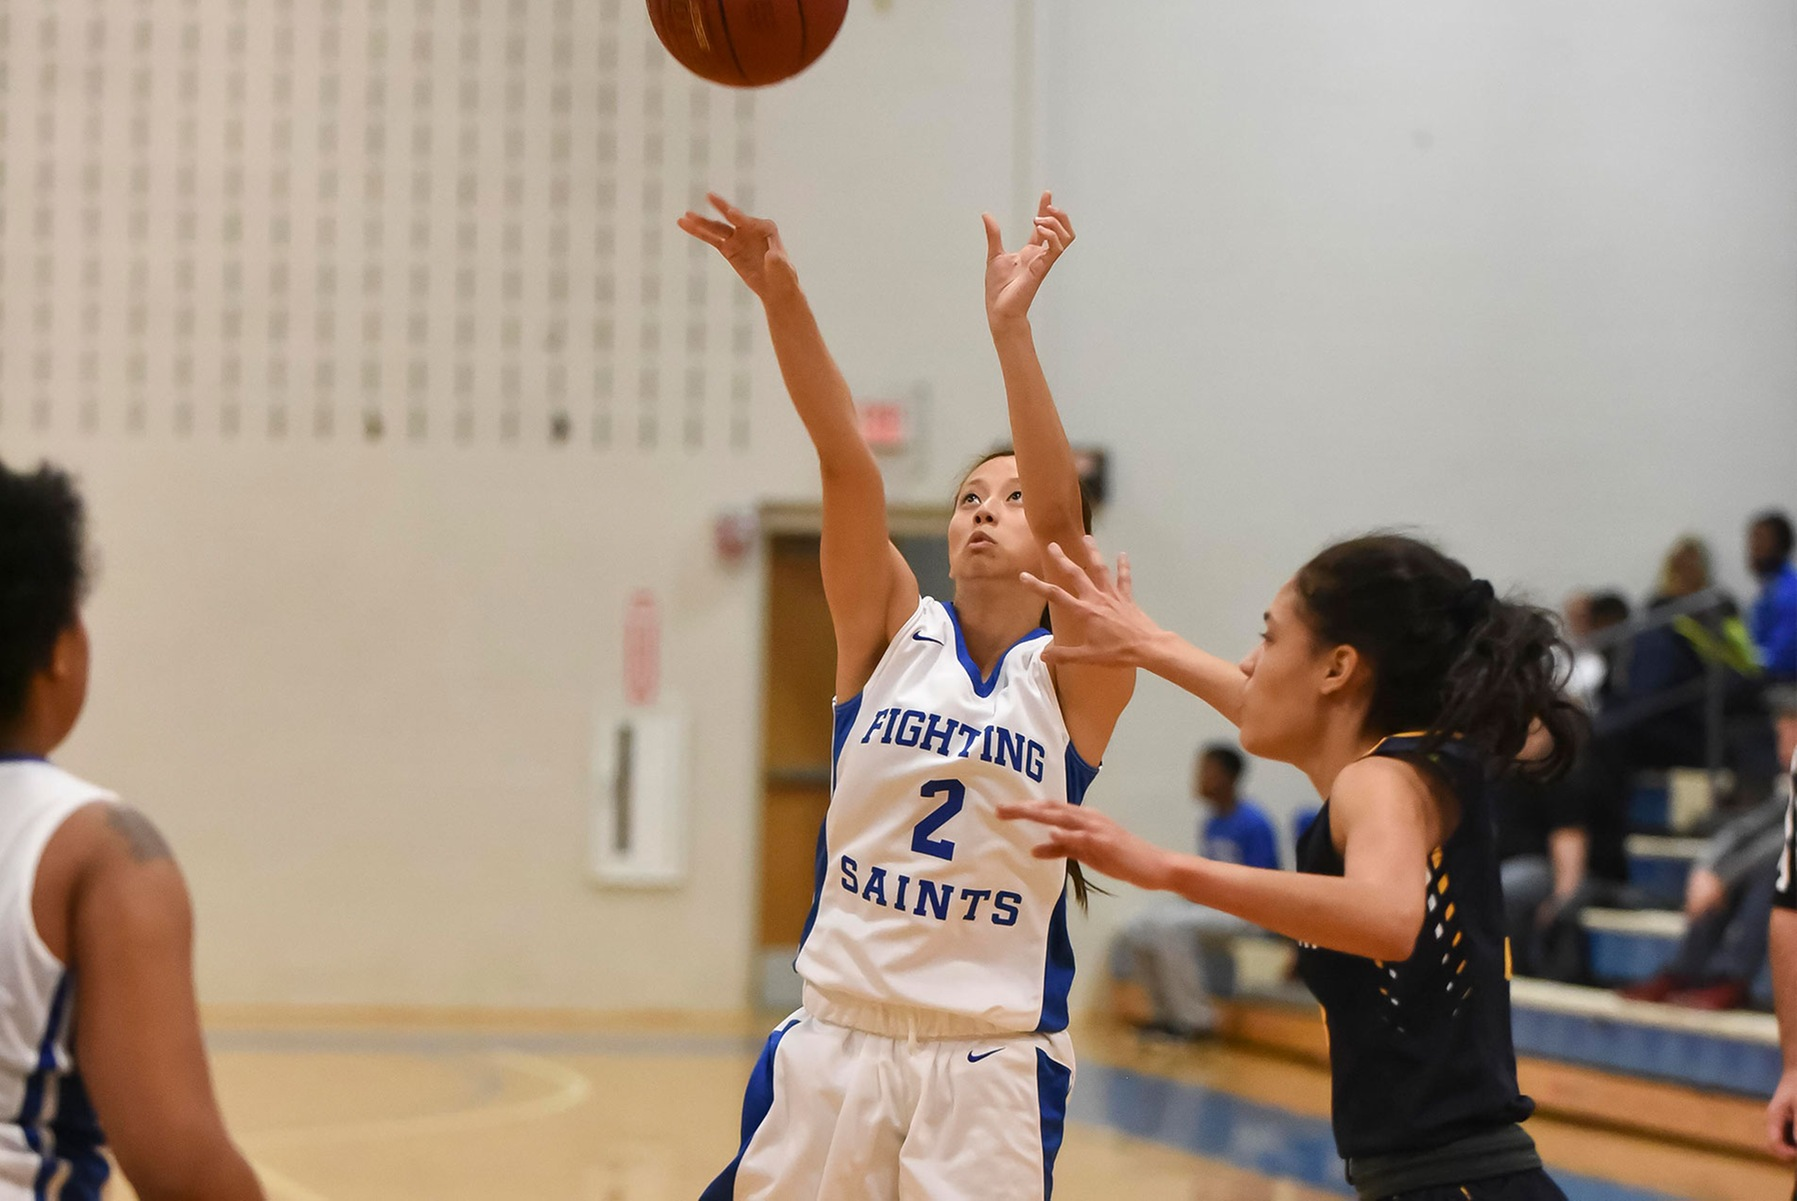 Lady Saints routed against the Seawolves